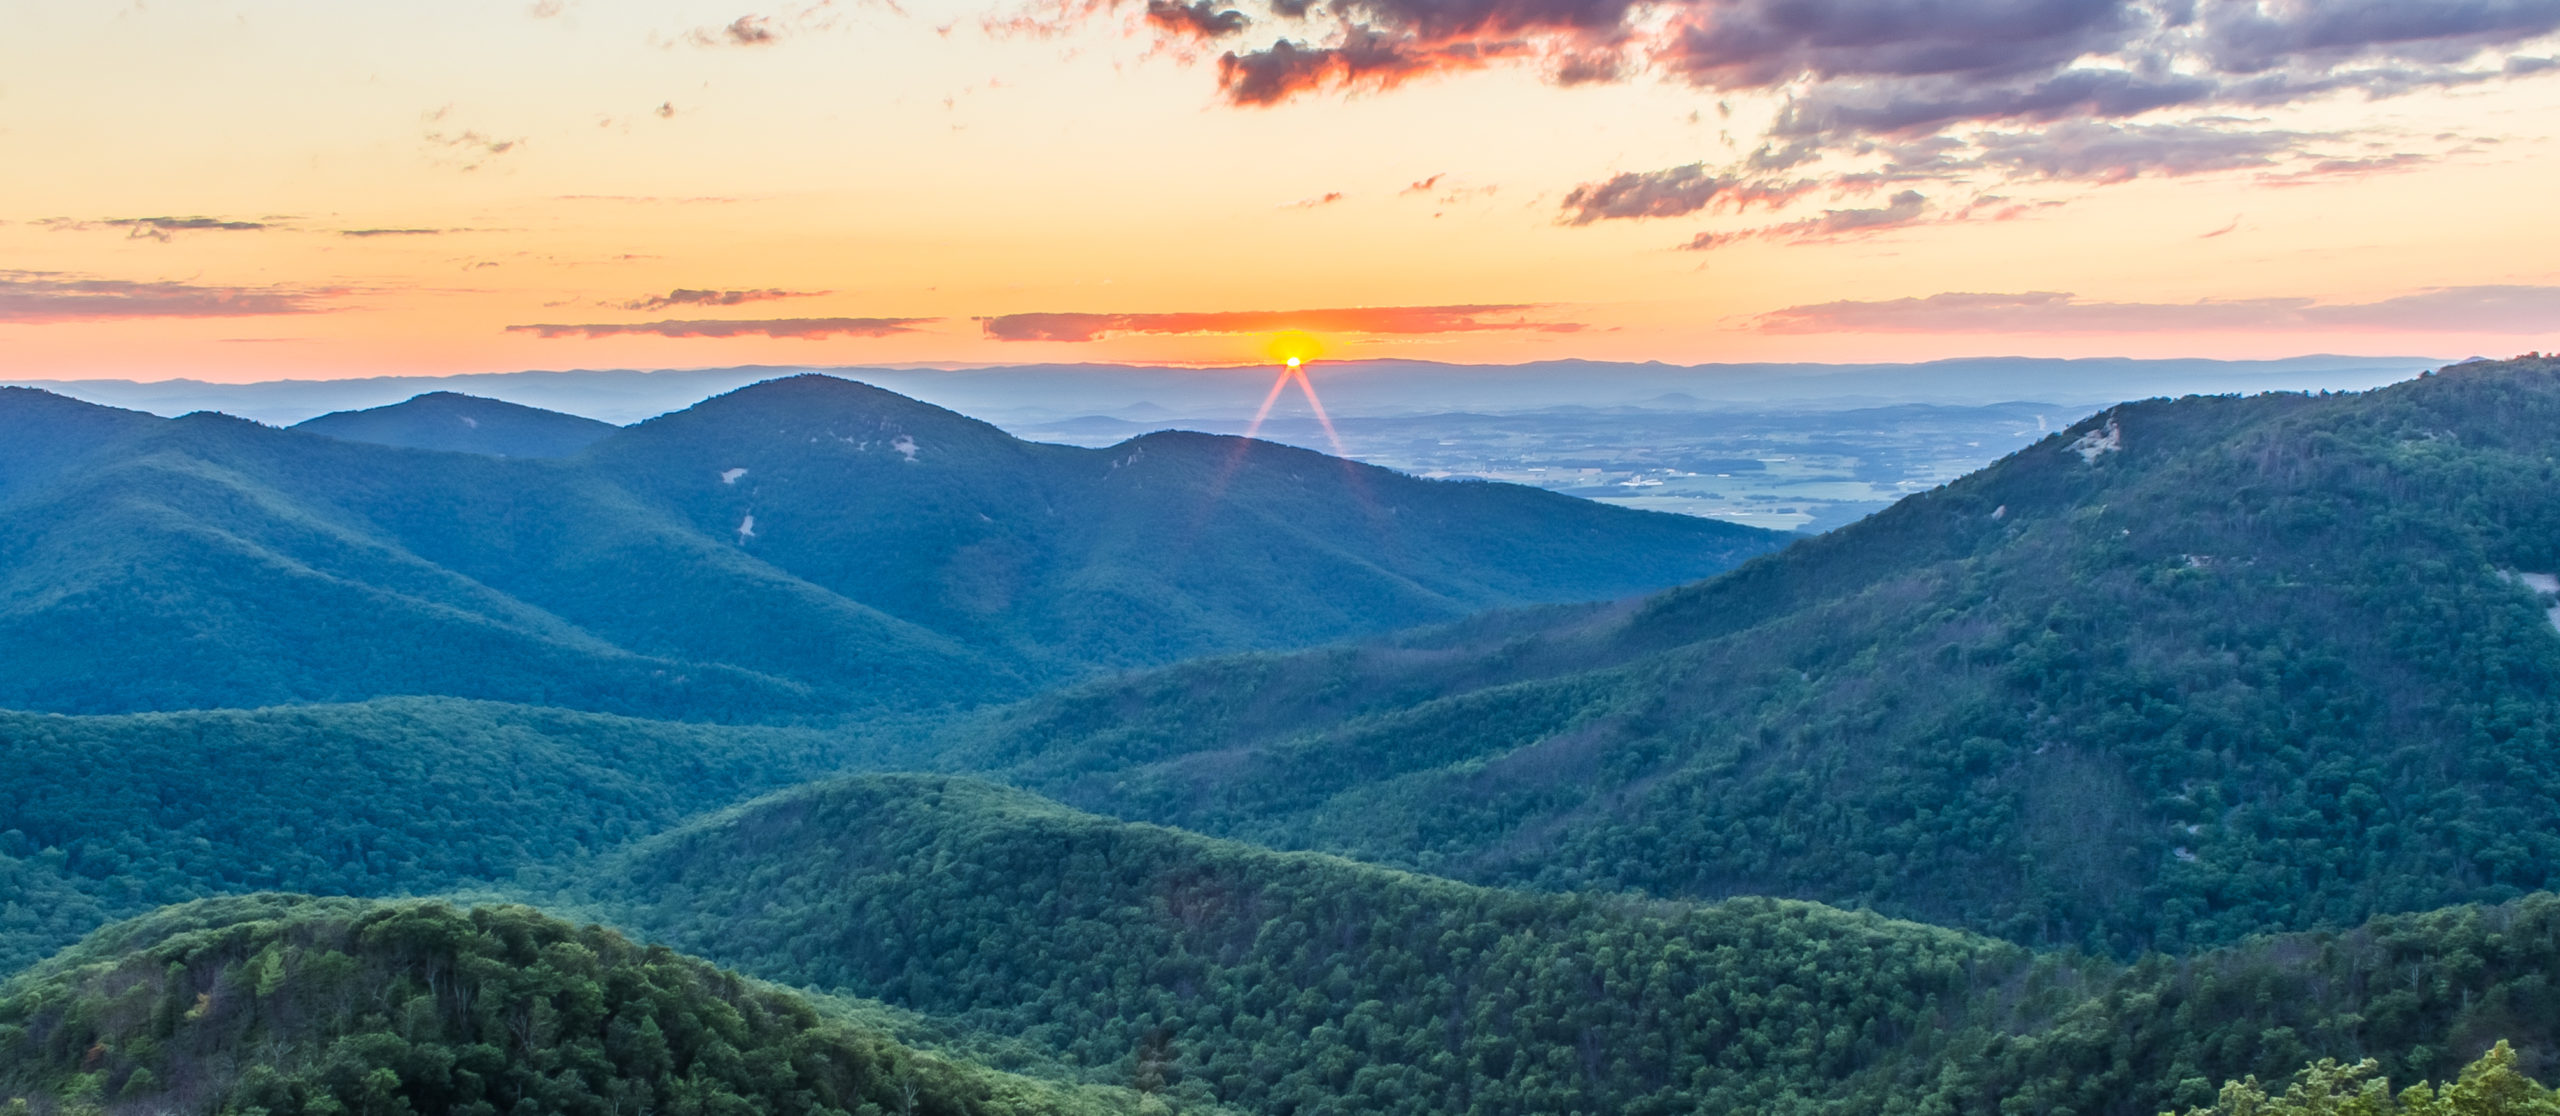 A sunset with clouds as seen from Skyline Drive of Shenandoah National